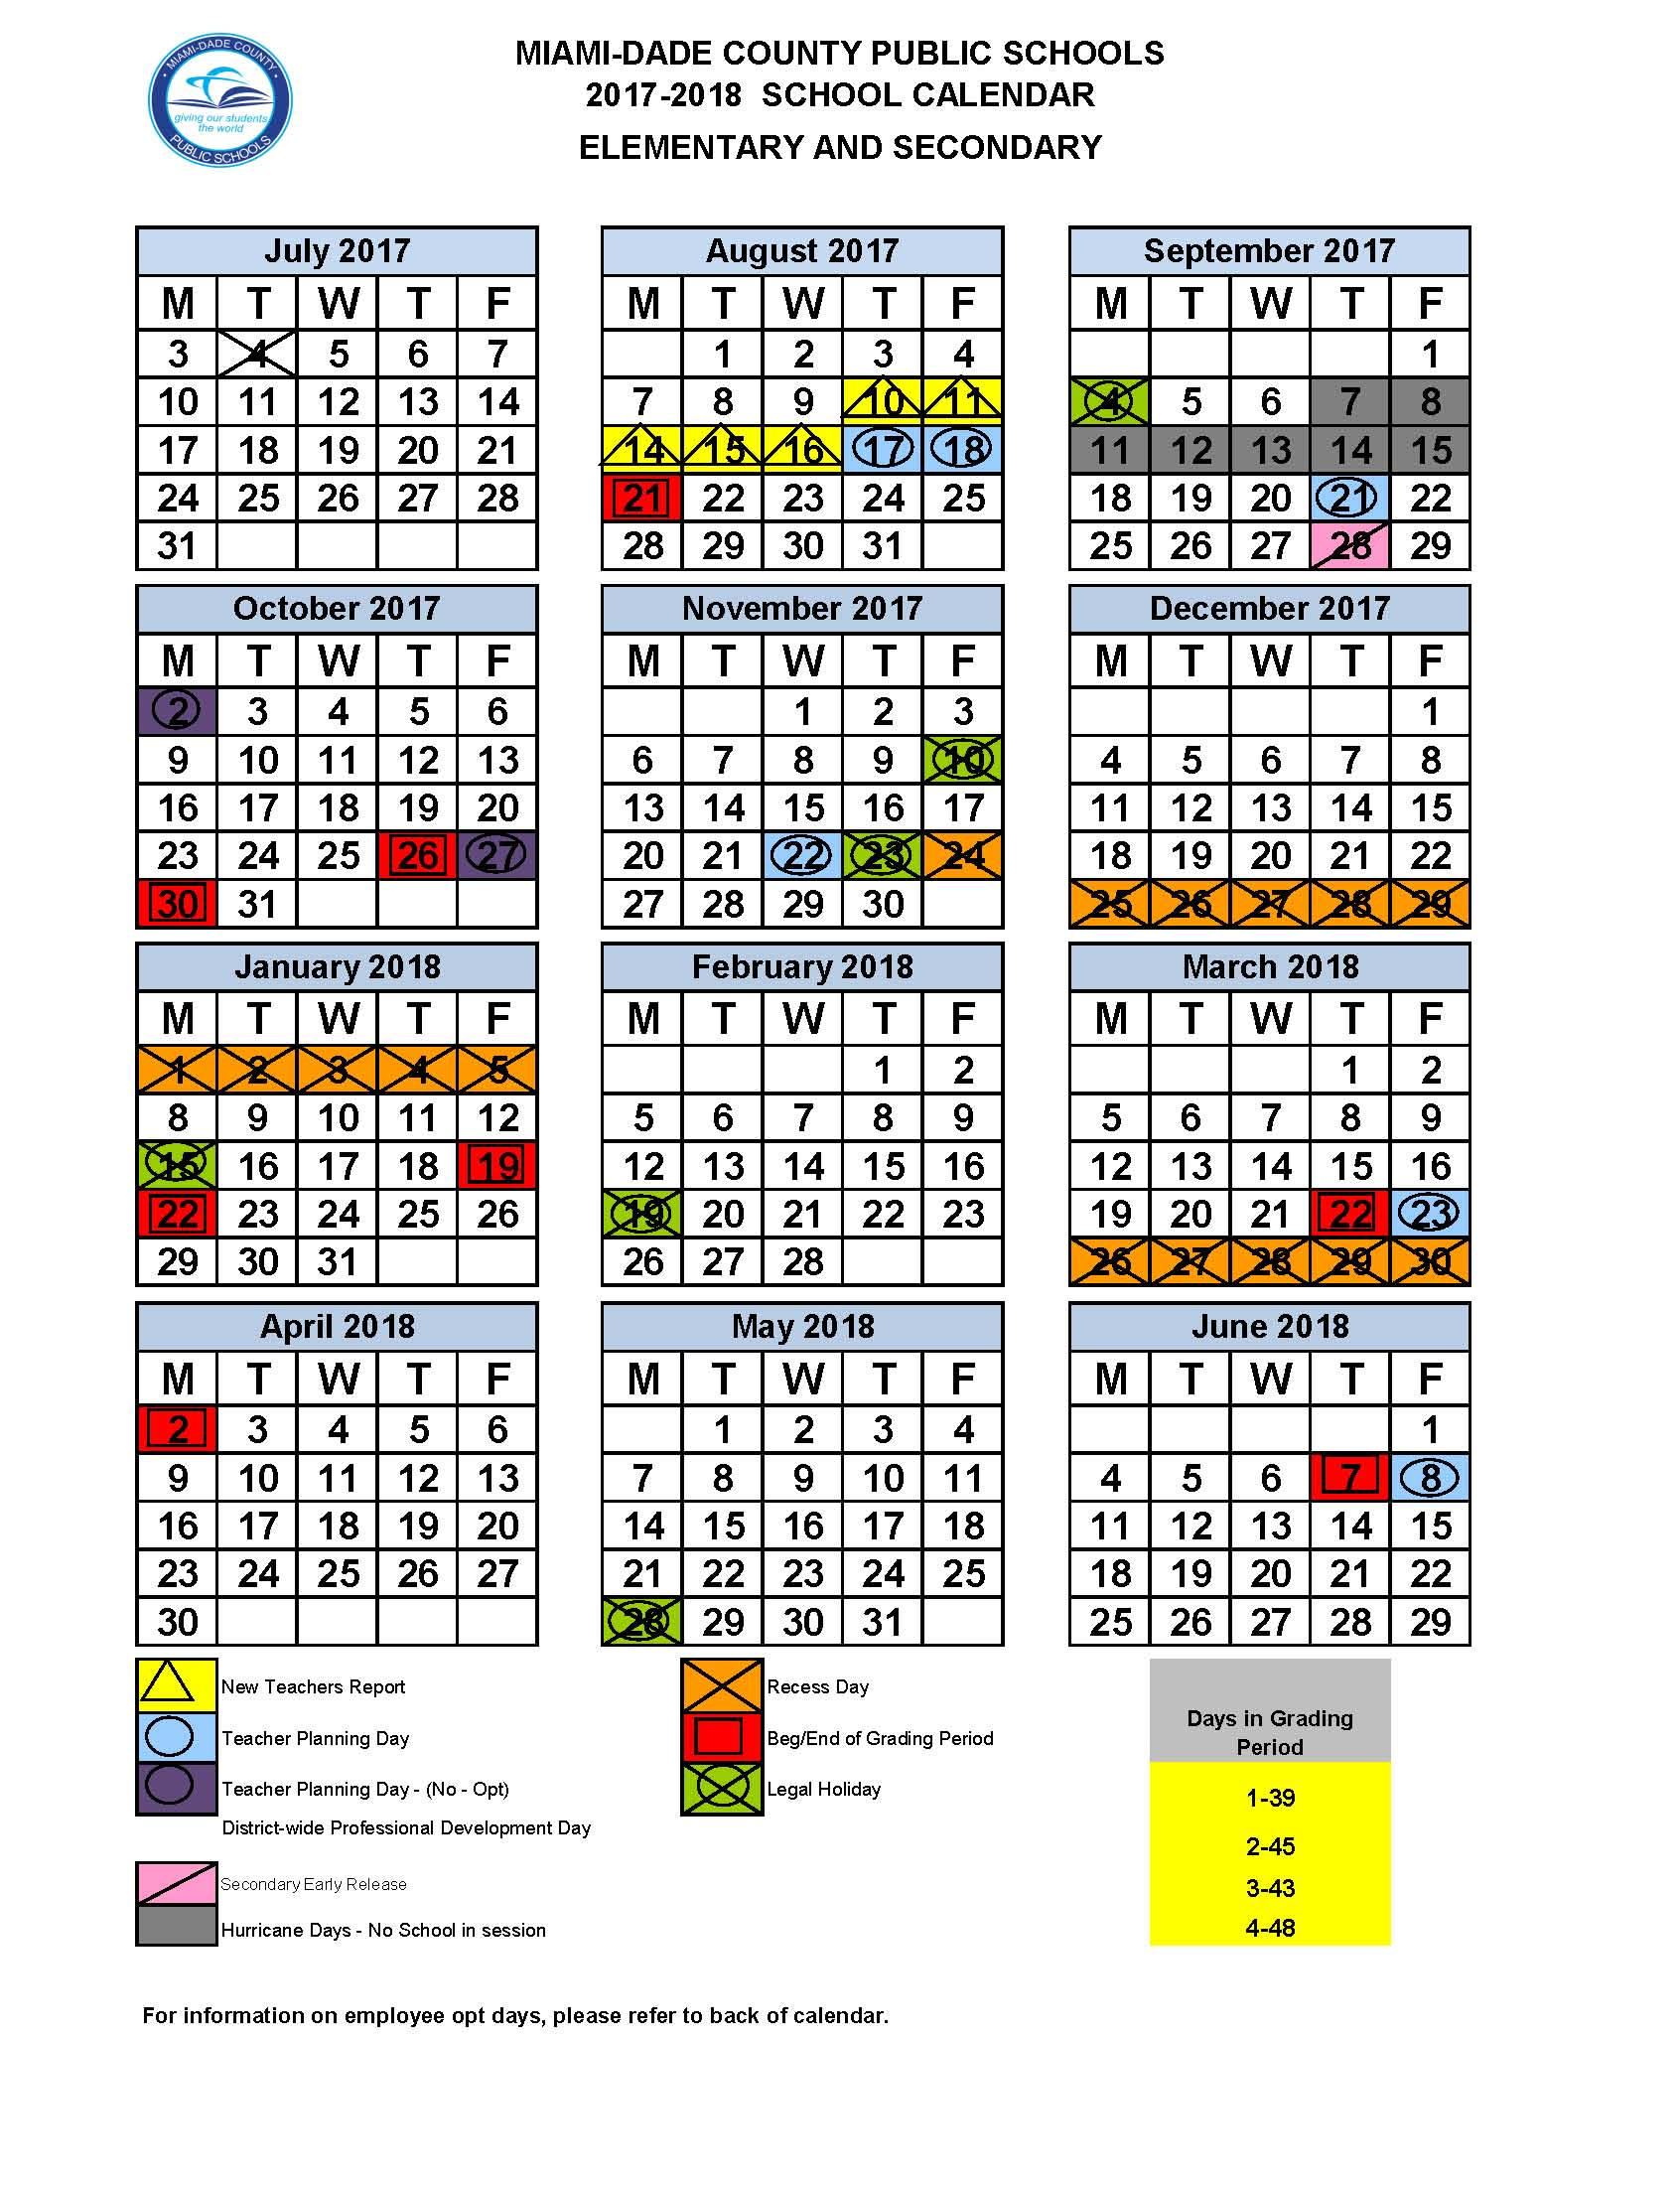 Miami Dade School Calendar Miami Dade revised school calendar   Caribbean News